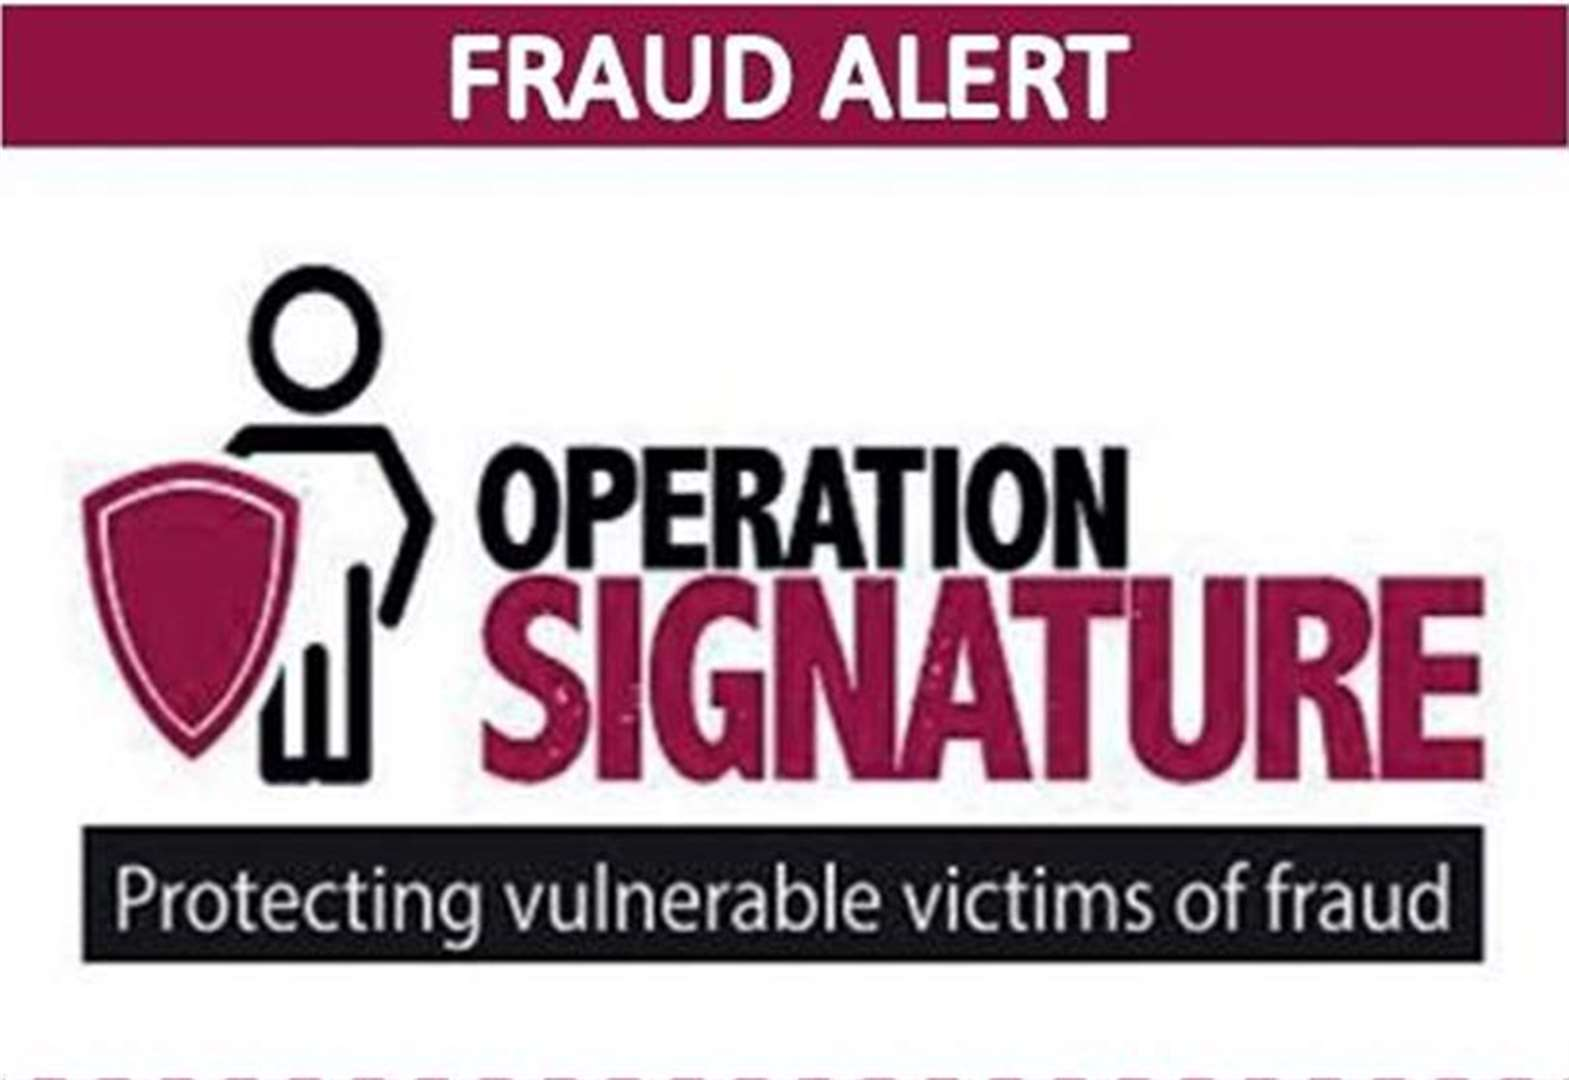 Warning as police impersonation fraudsters target Grantham